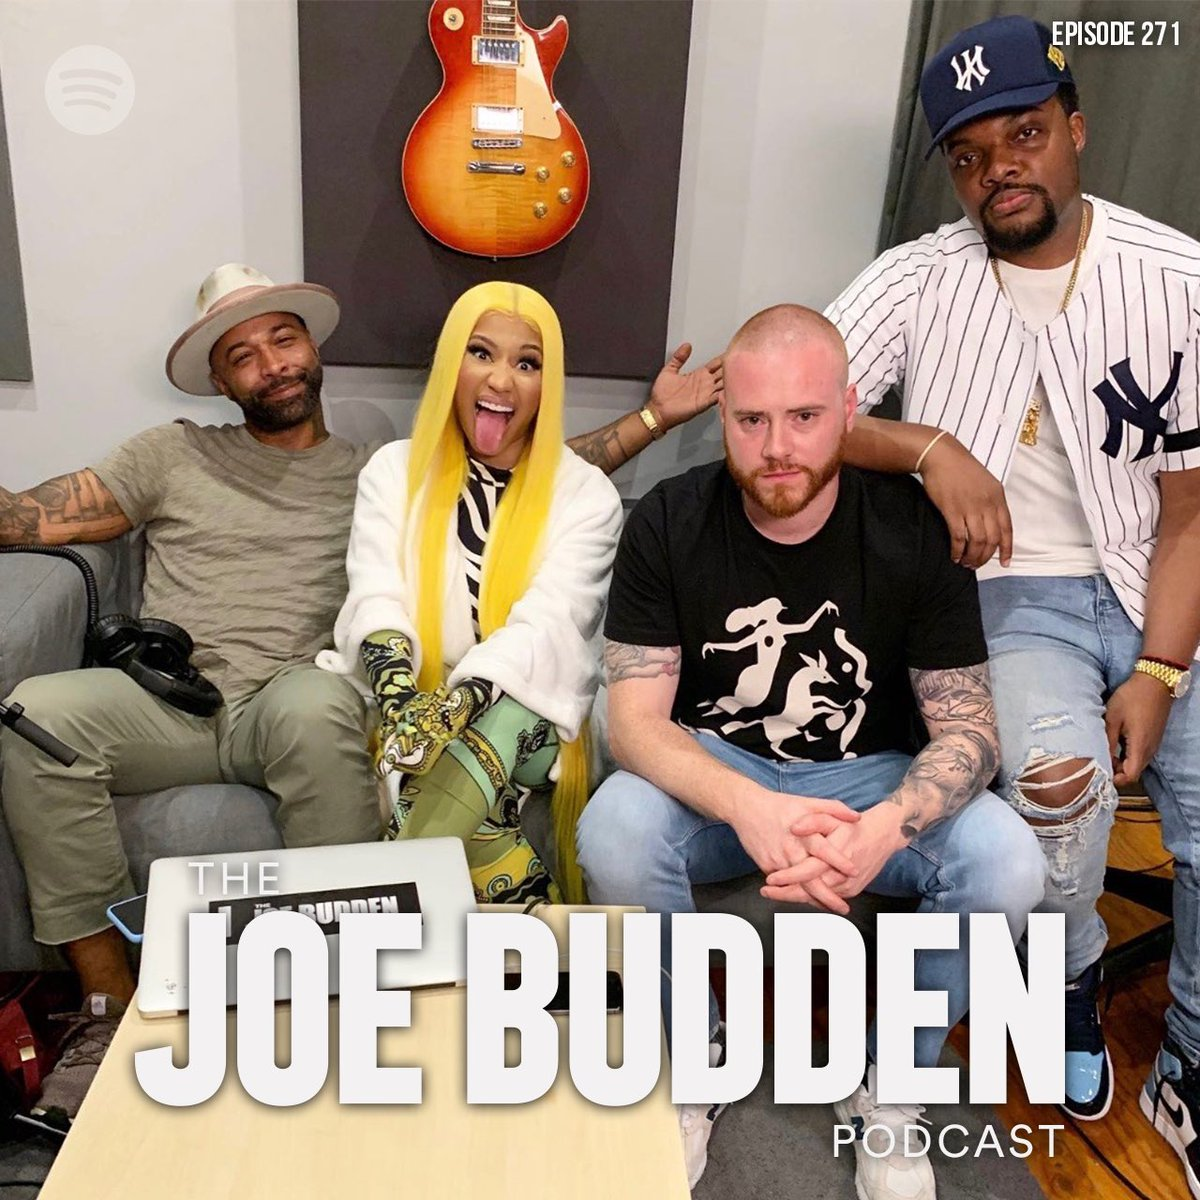 """The @JoeBudden Podcast Episode 271 """"Case Study"""" Feat. @NICKIMINAJ is available now! Stream exclusively on @Spotify LISTEN HERE 🎧: open.spotify.com/episode/1zwZNN…"""